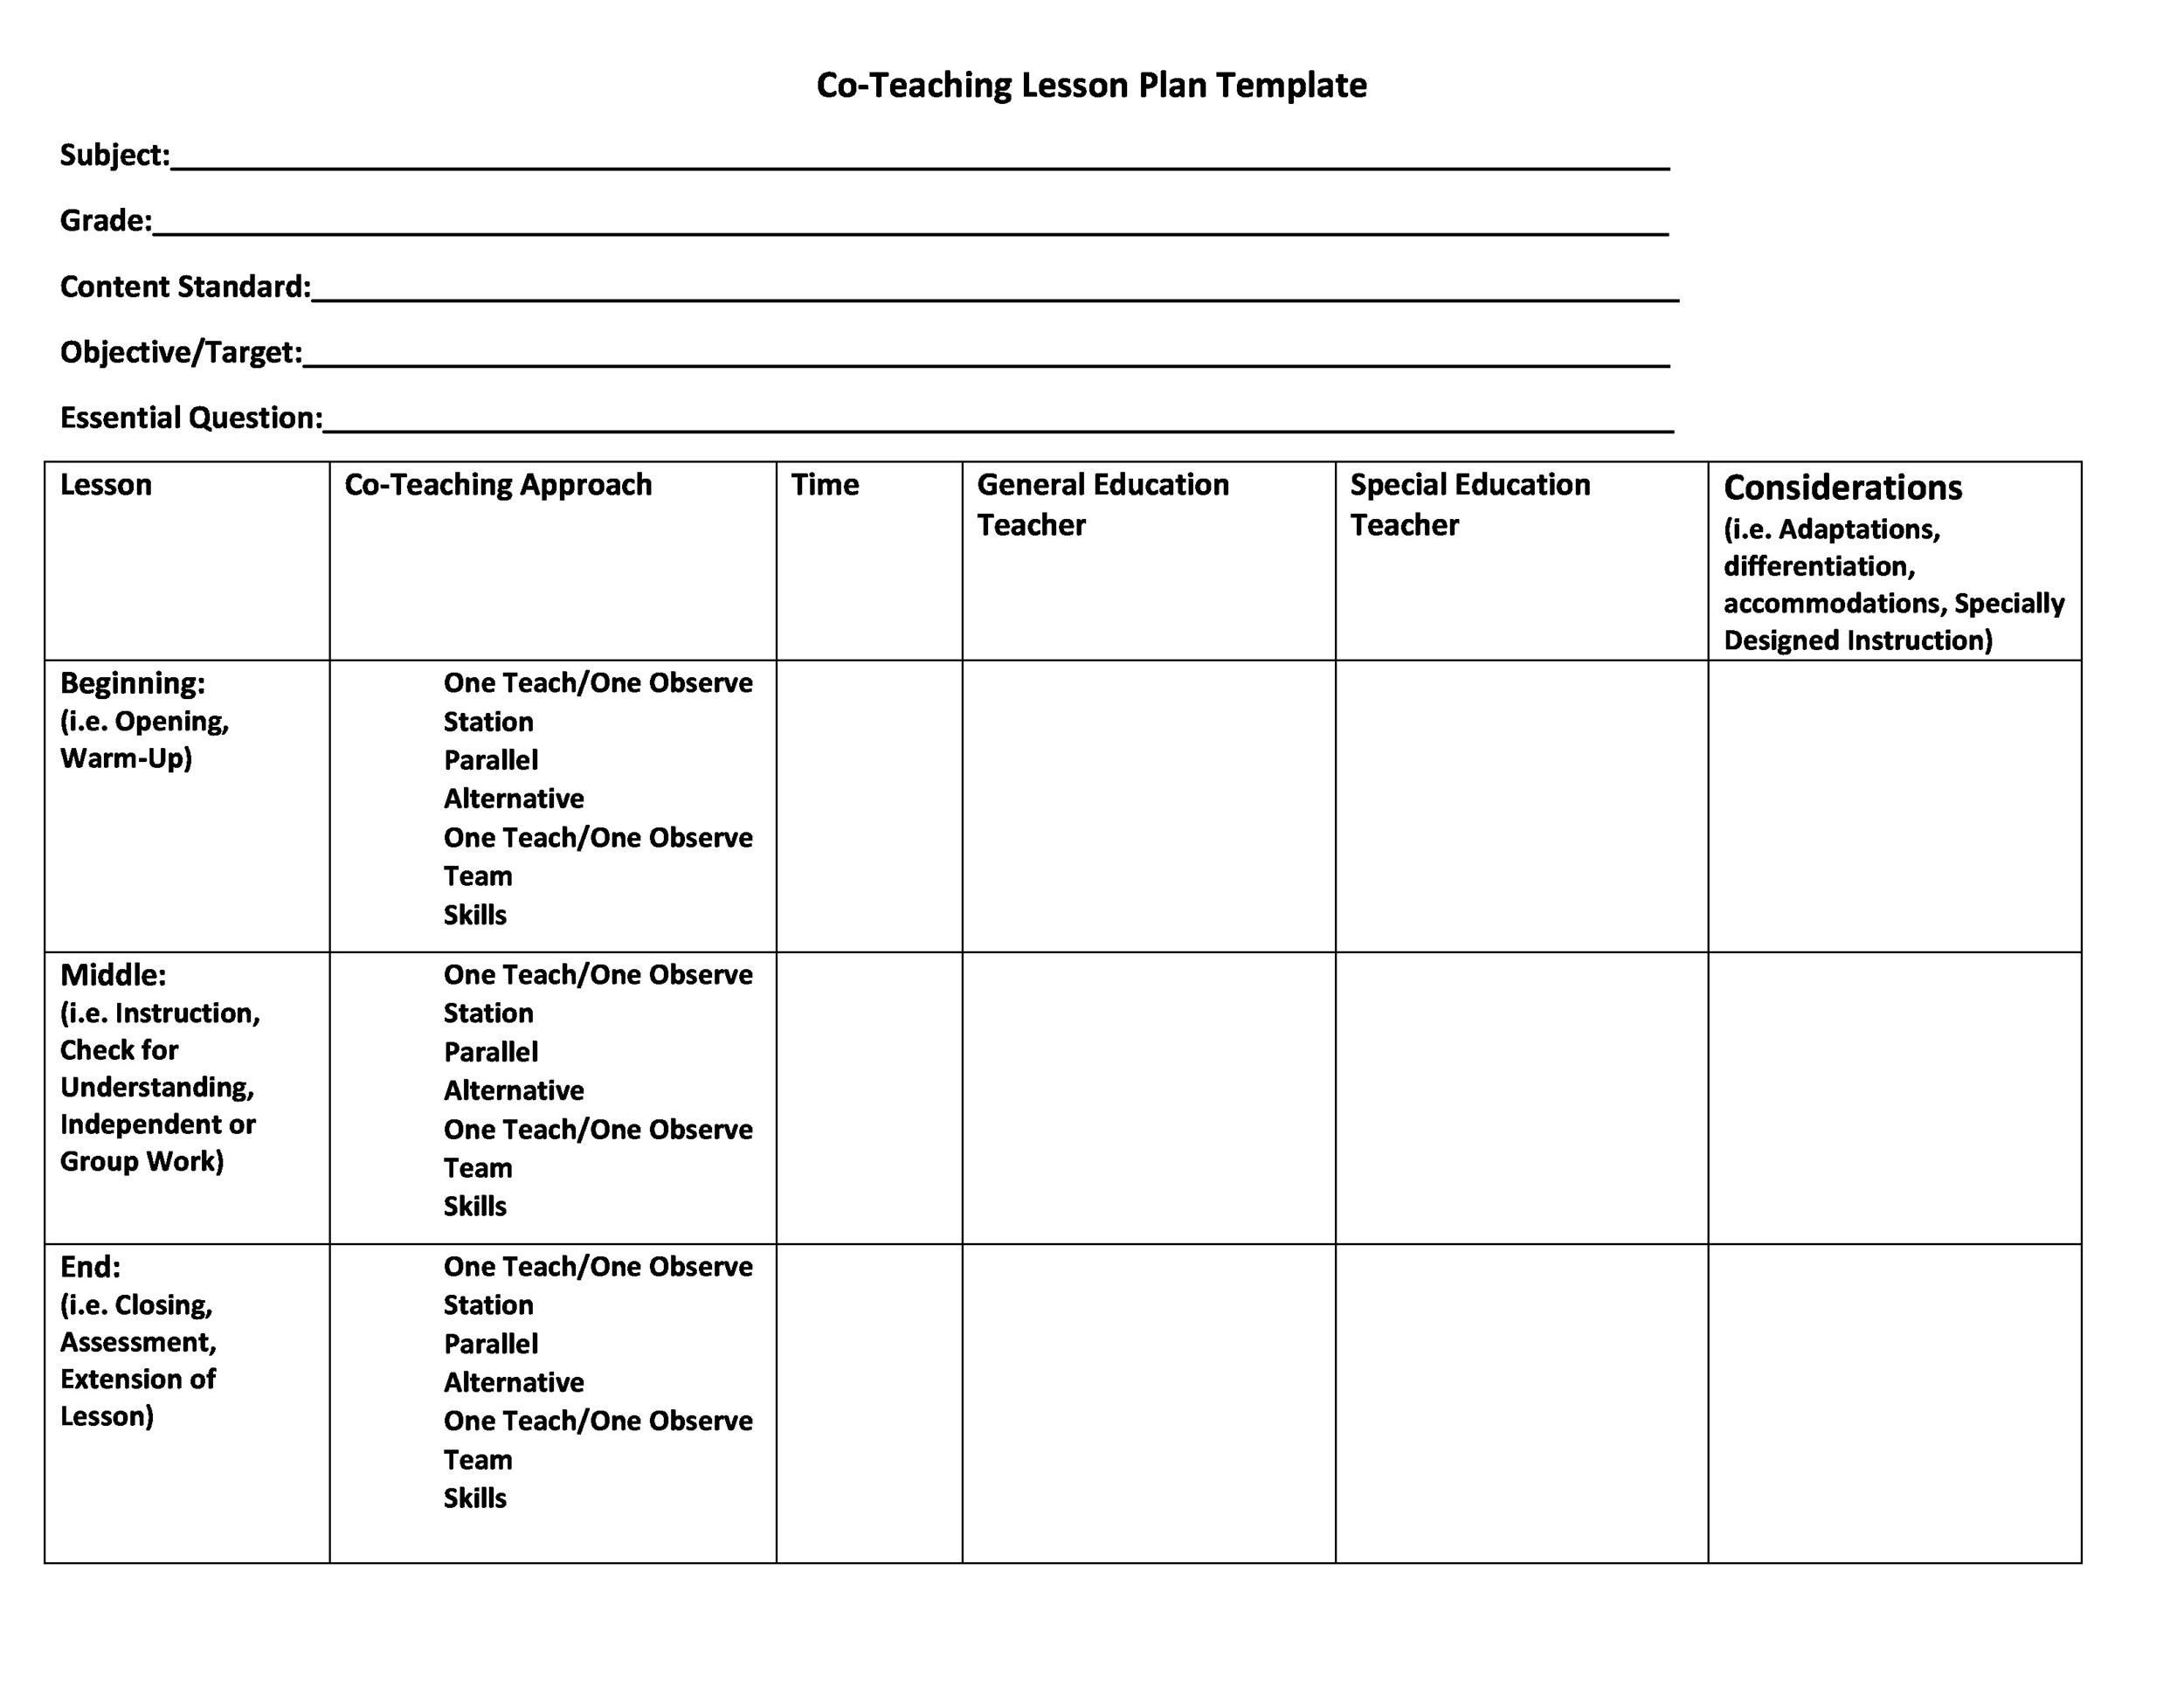 44 FREE Lesson Plan Templates Common Core, Preschool, Weekly - lesson plan outline